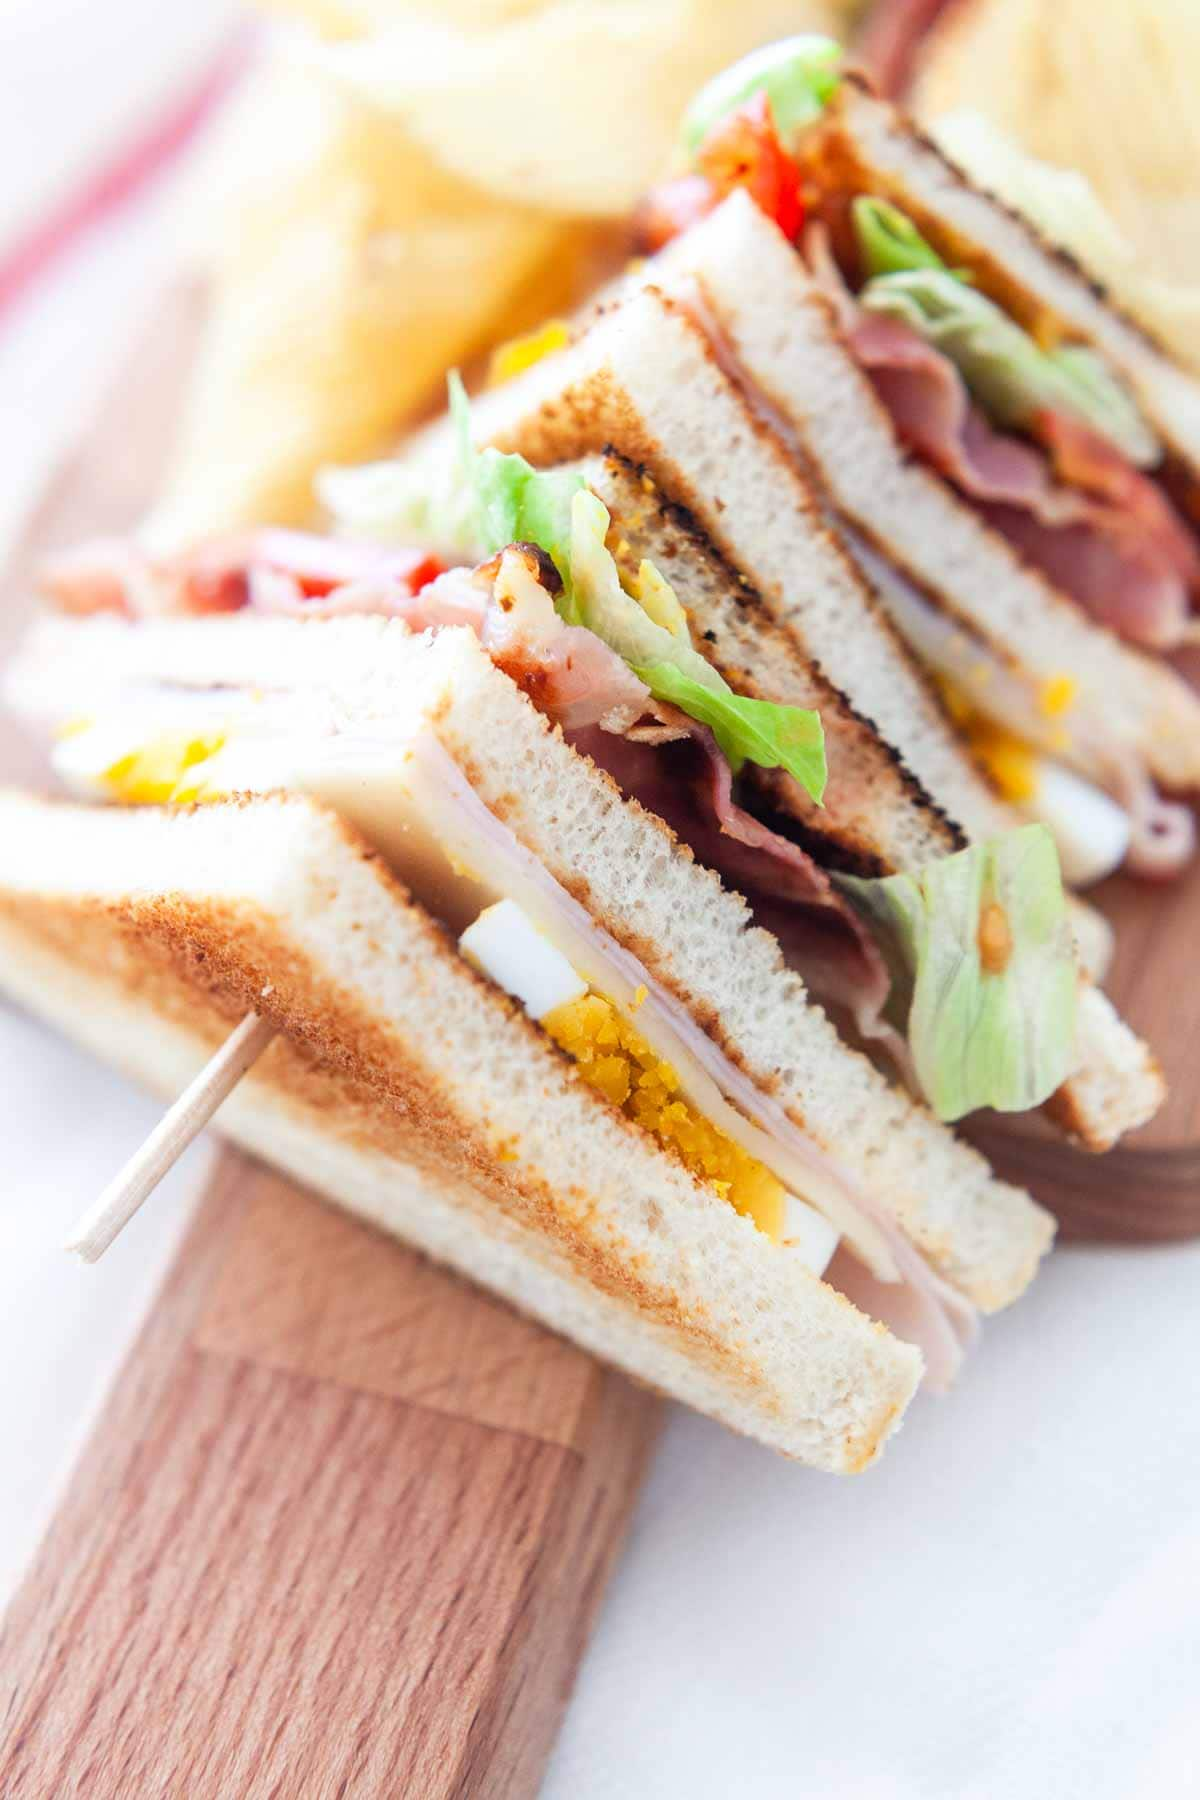 Looking for a quick and simple club sandwich take a look at this classic club sandwich recipe. Great for lunch or dinner. Visit fastfoodbistro.com for the full recipe #fastfoodbistro #clubsandwich #lunch #dinner #classicclubsandwich #clubsandwichrecipe